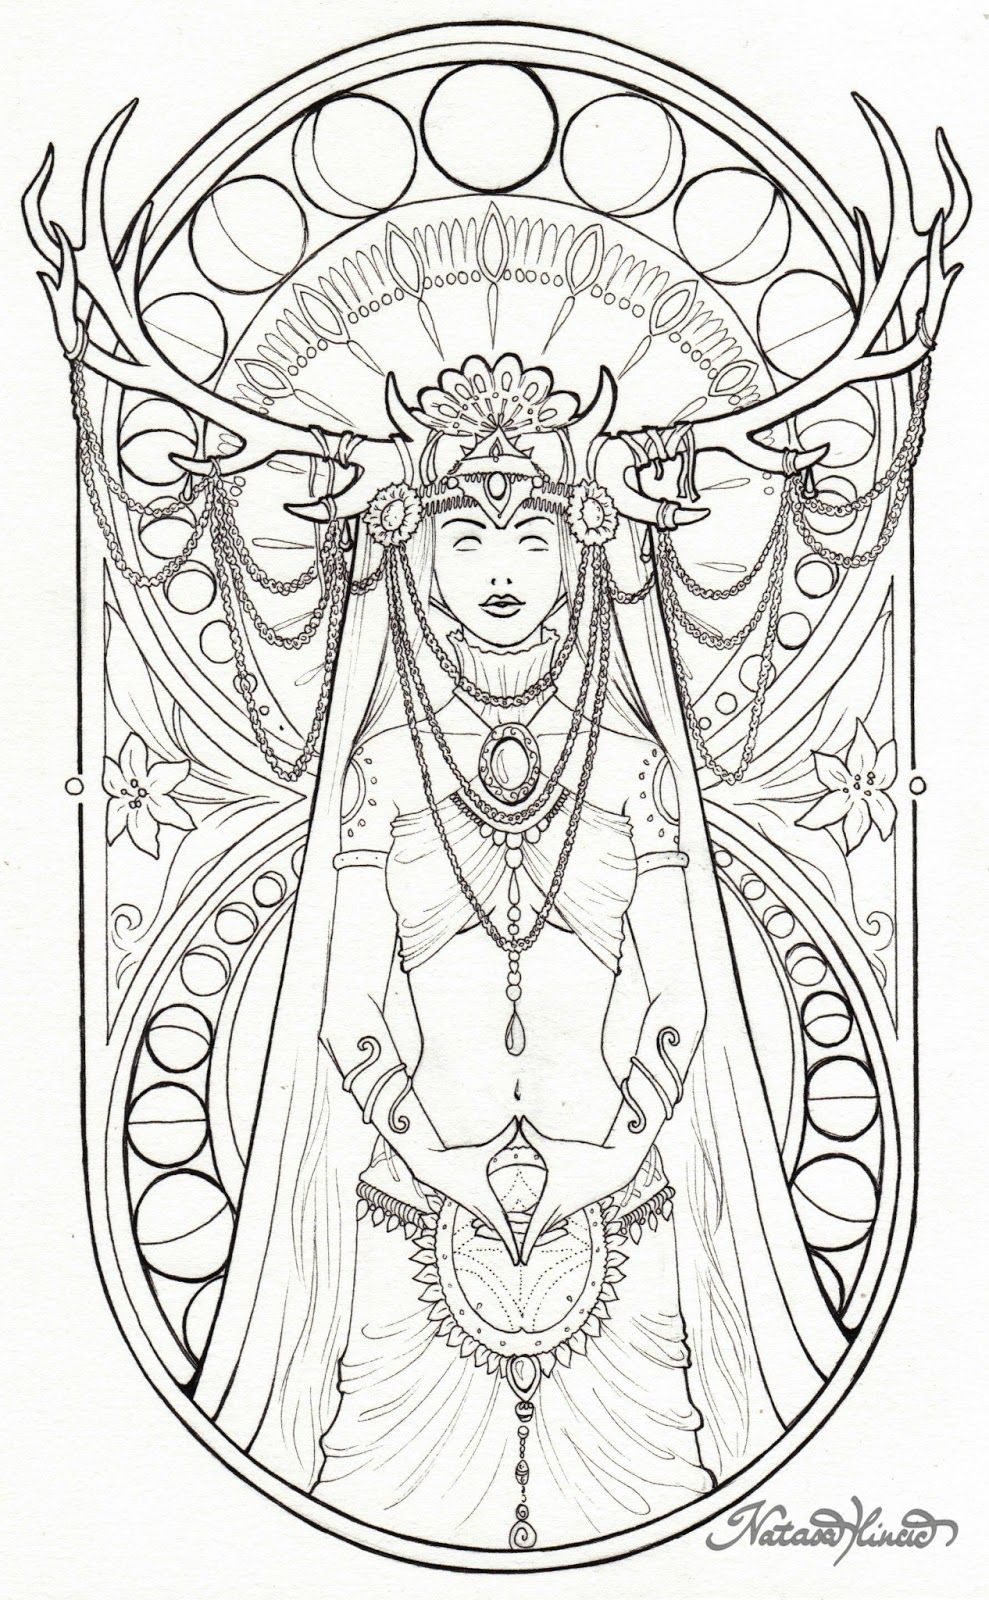 Nata S Artblog Yoni Coloring Books Coloring Pages Adult